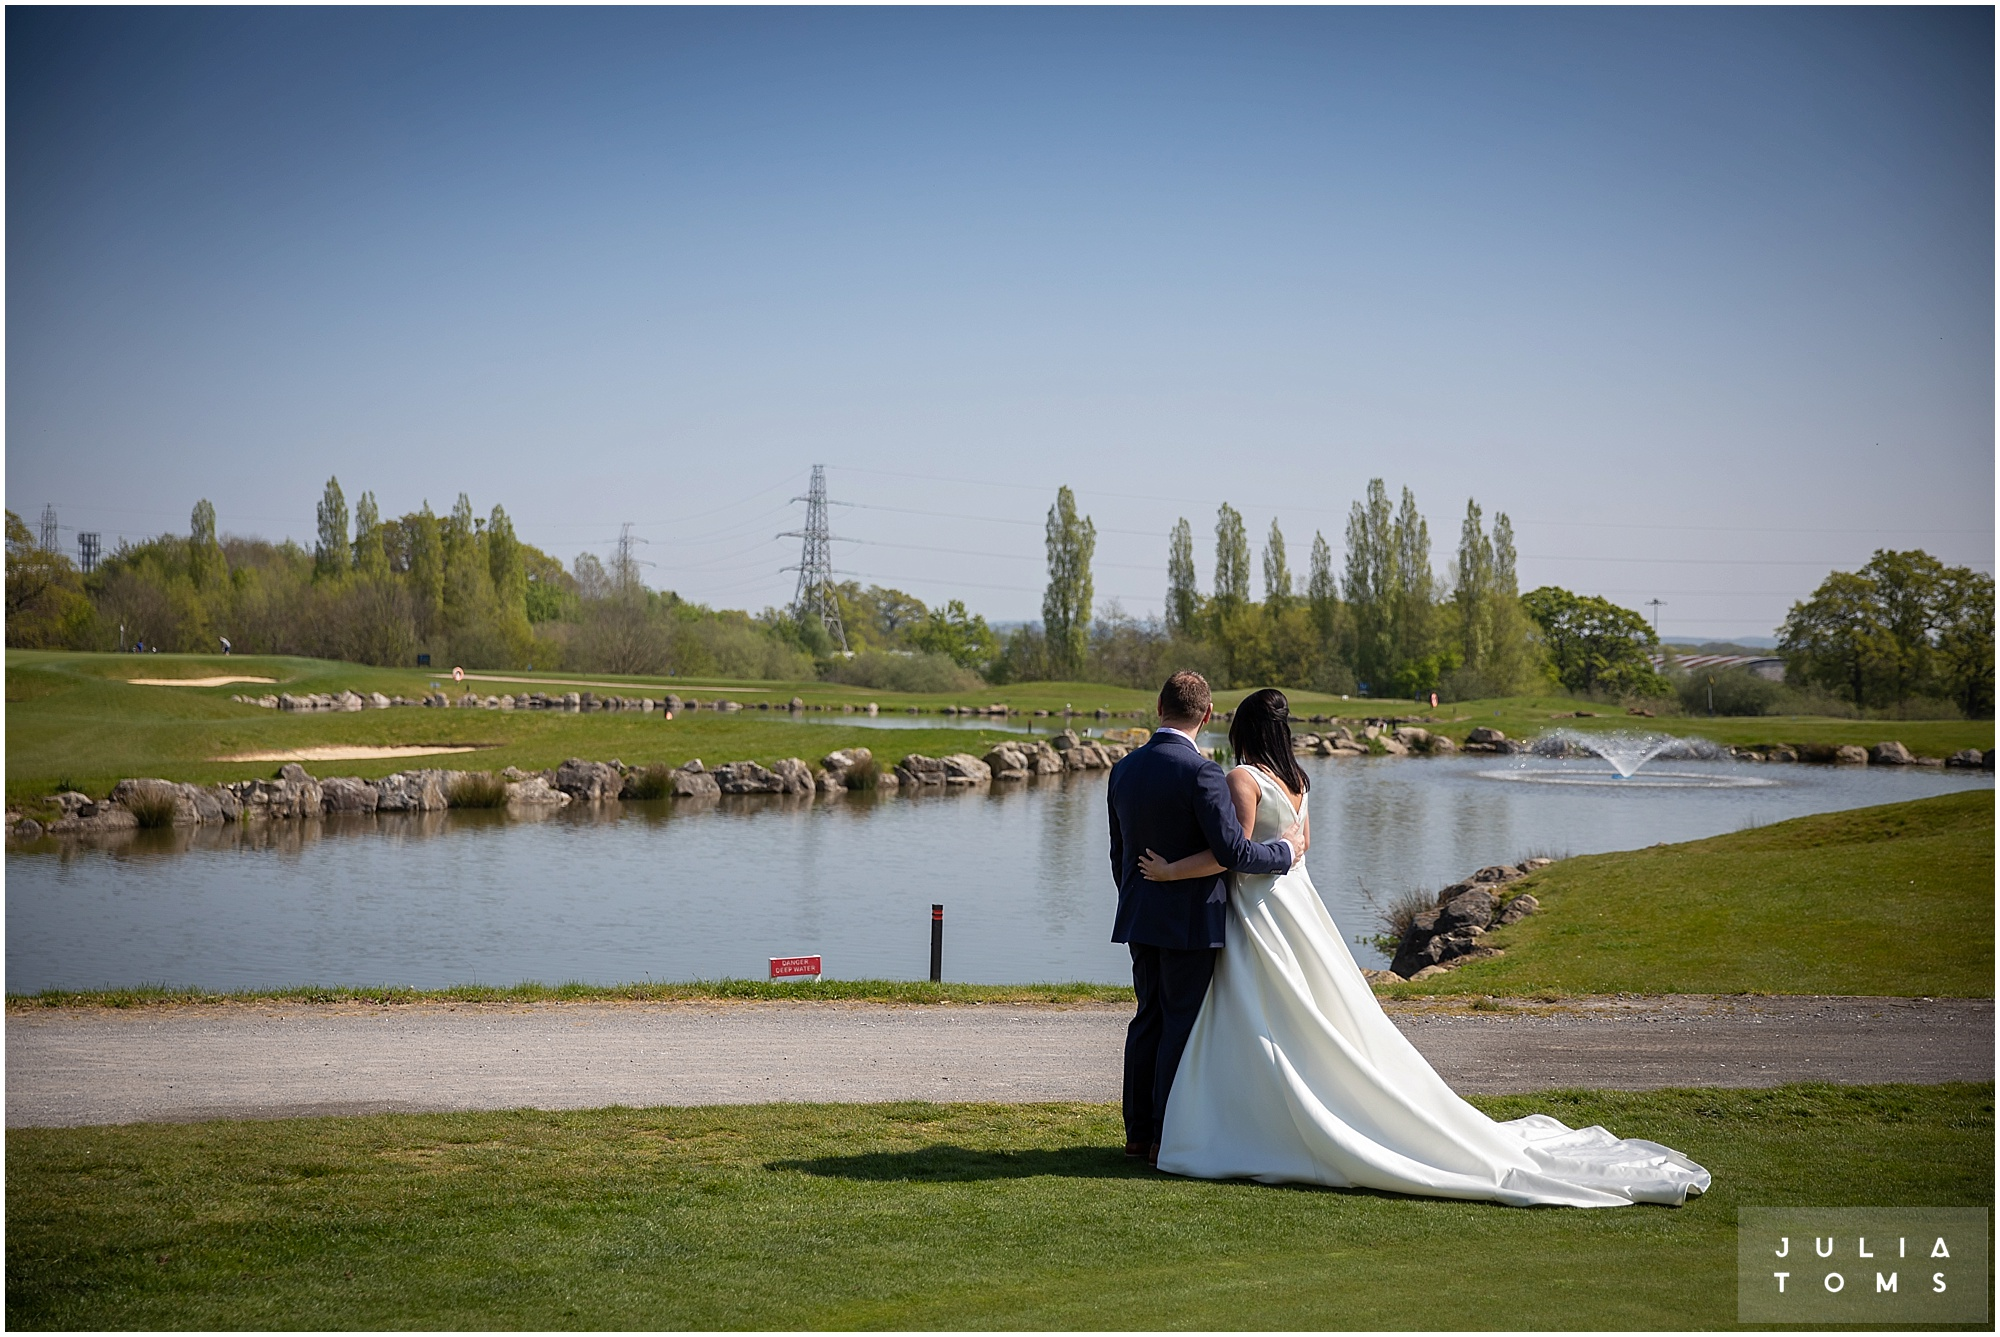 hampshire_wedding_photographer_juliatoms_008.jpg